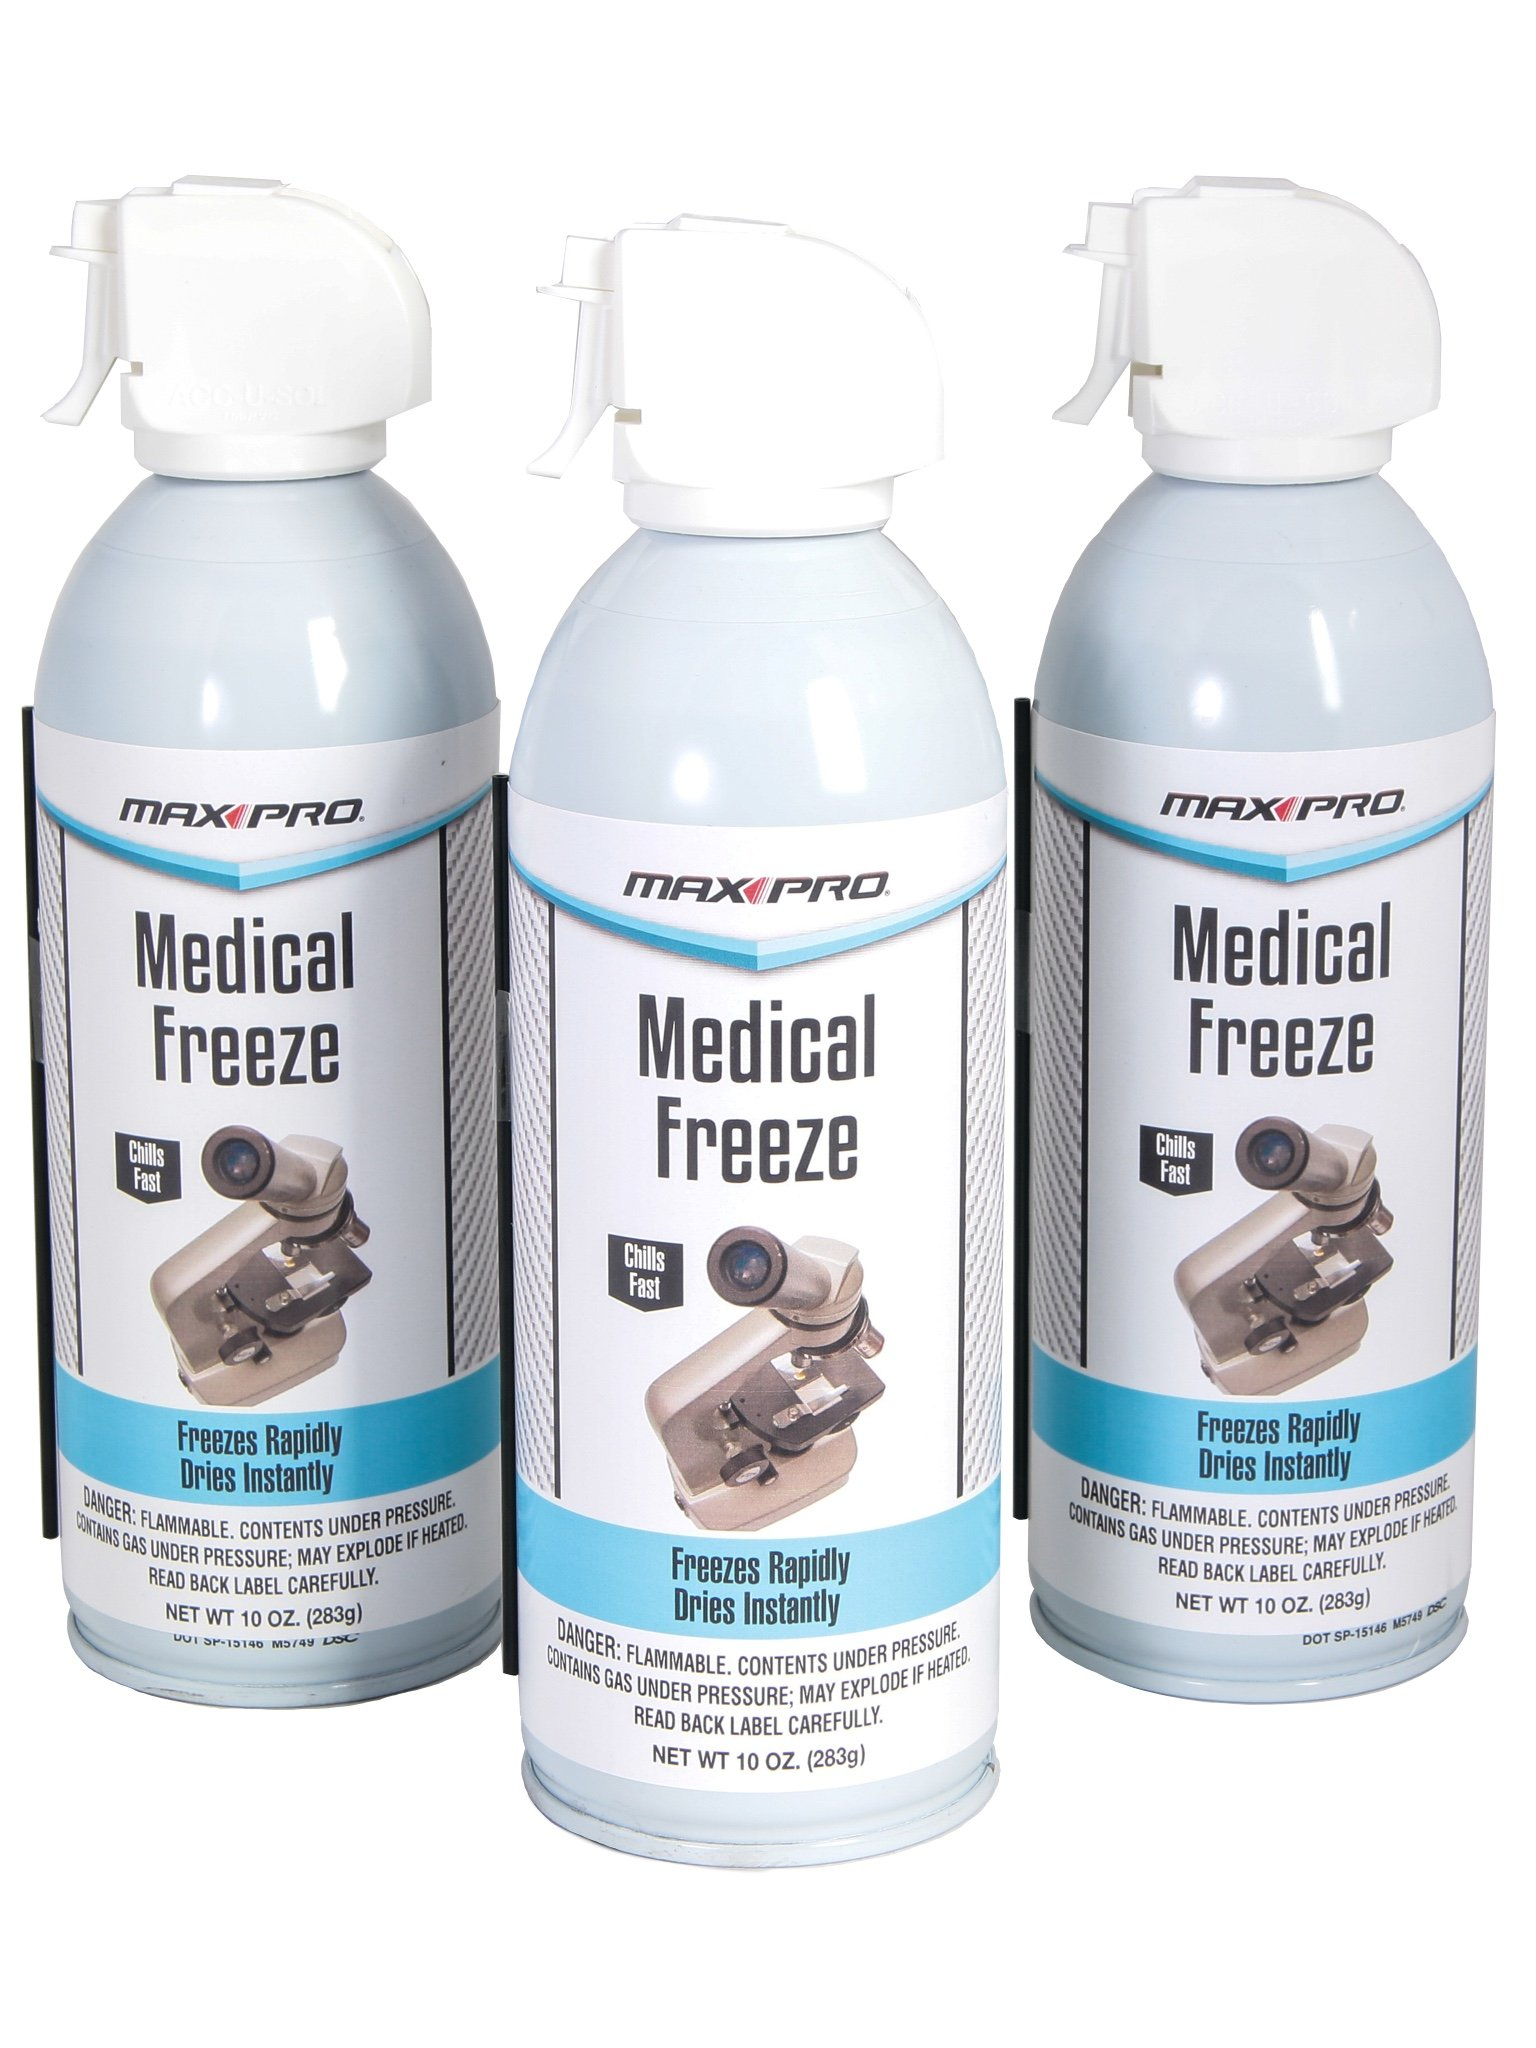 Original Max Pro® Medical Freeze Spray (3) by Promax (Image #1)